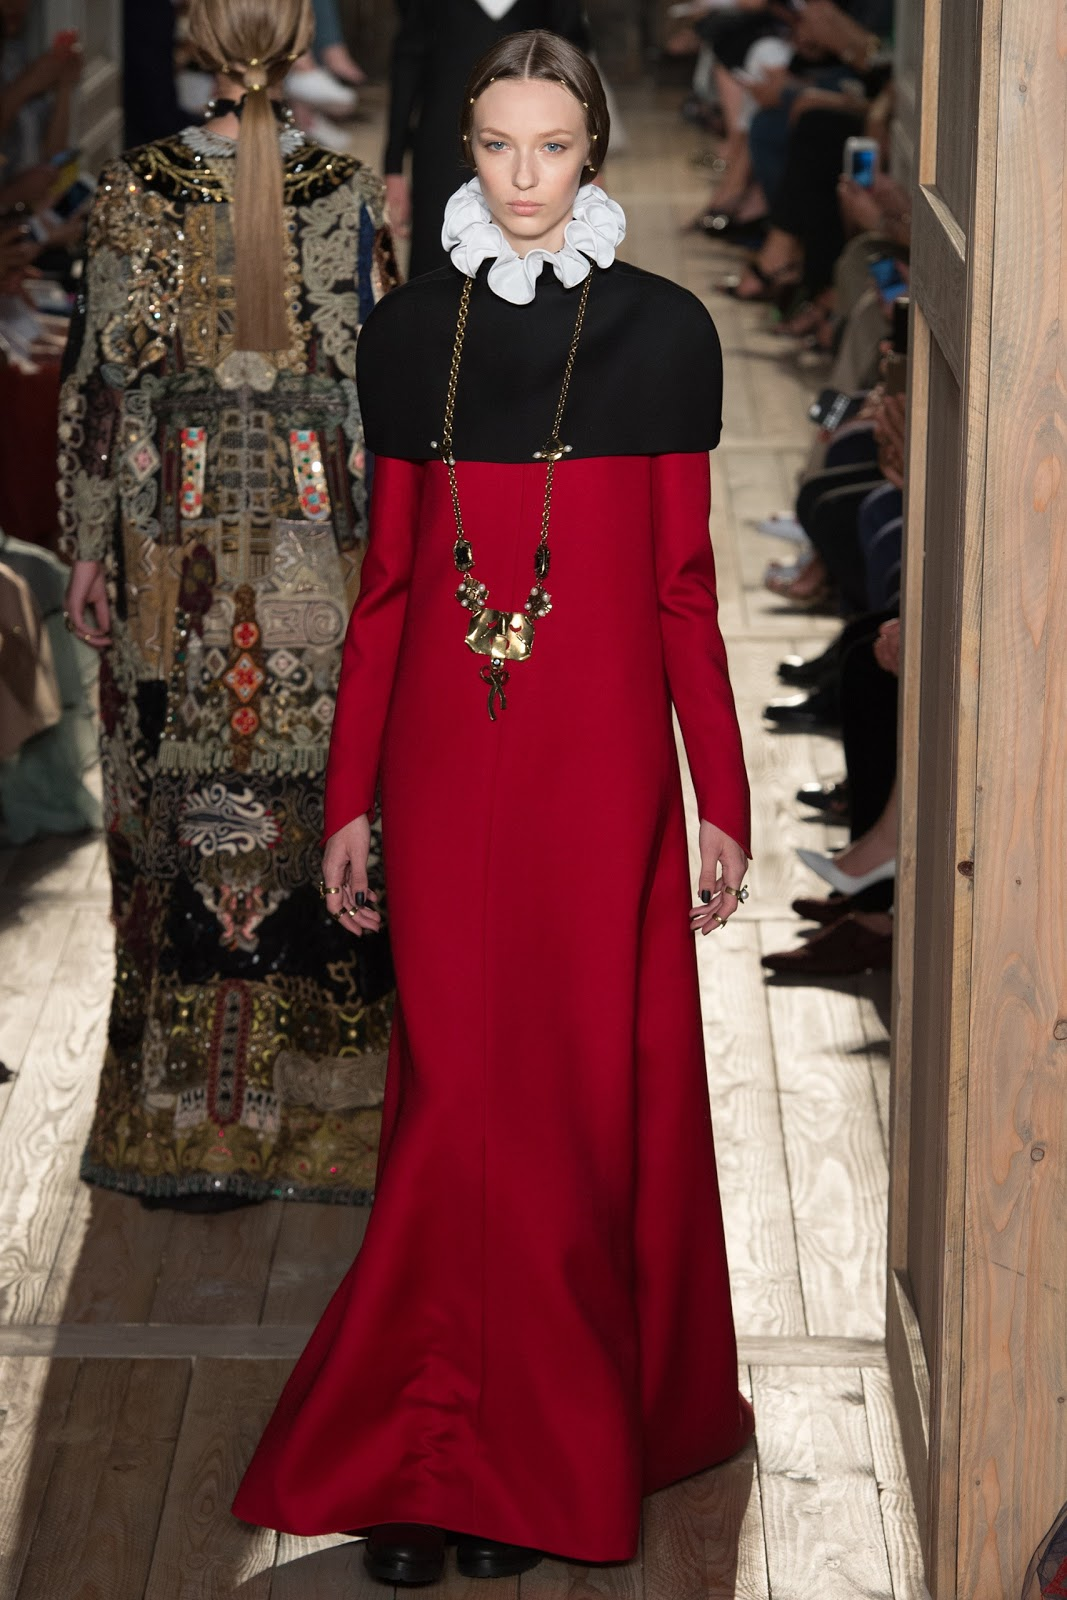 2016 Fall 2017 Winter Fashion Trends For Teens: Valentino Fall 2016 Couture Fashion Show